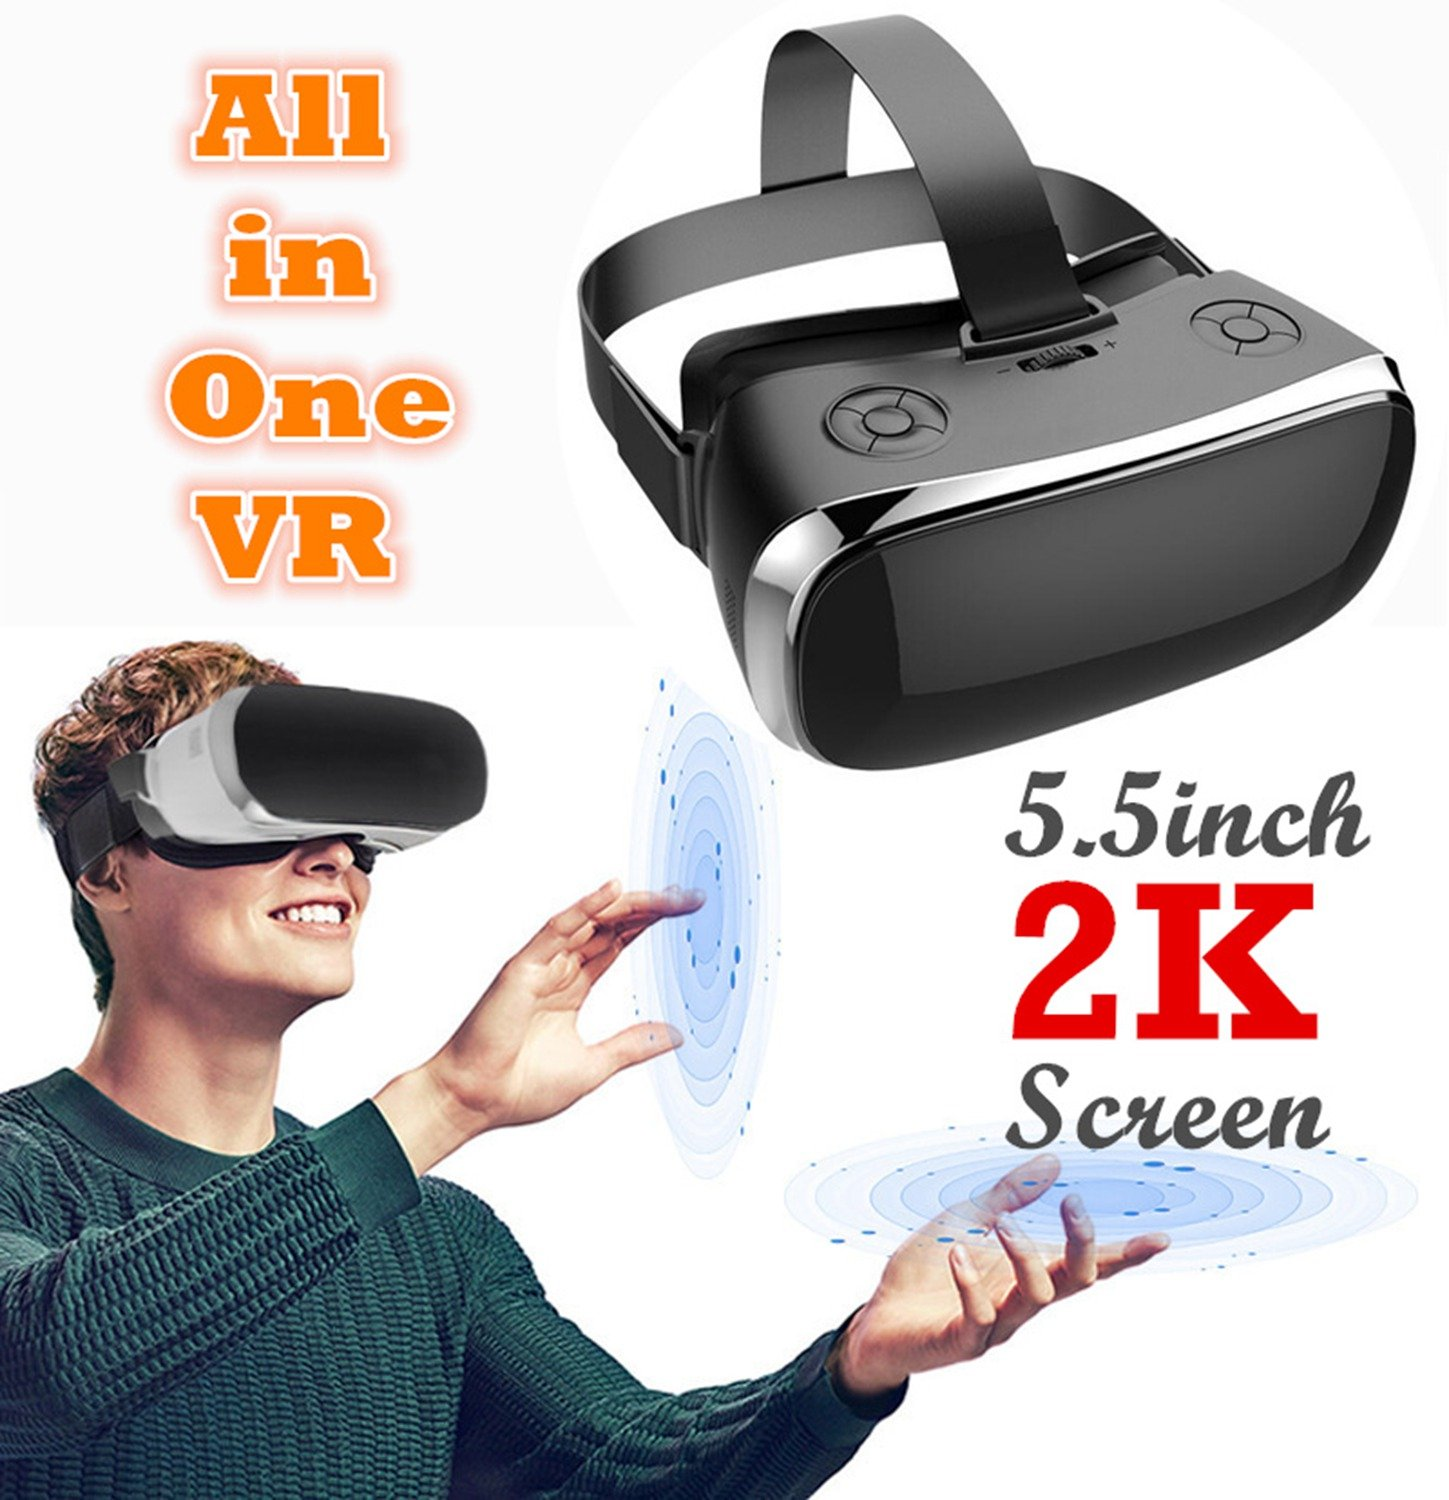 3D Virtual Reality Headset All in One, TSANGLIGHT Android 5.1 VR Headset All in One 360° View 5.5inch 2K 19201080 HD Screen - Quad Core CPU, 2GB RAM, 9 Axis Sensor (Virtual Reality No Phone Needed) by TSANGLIGHT